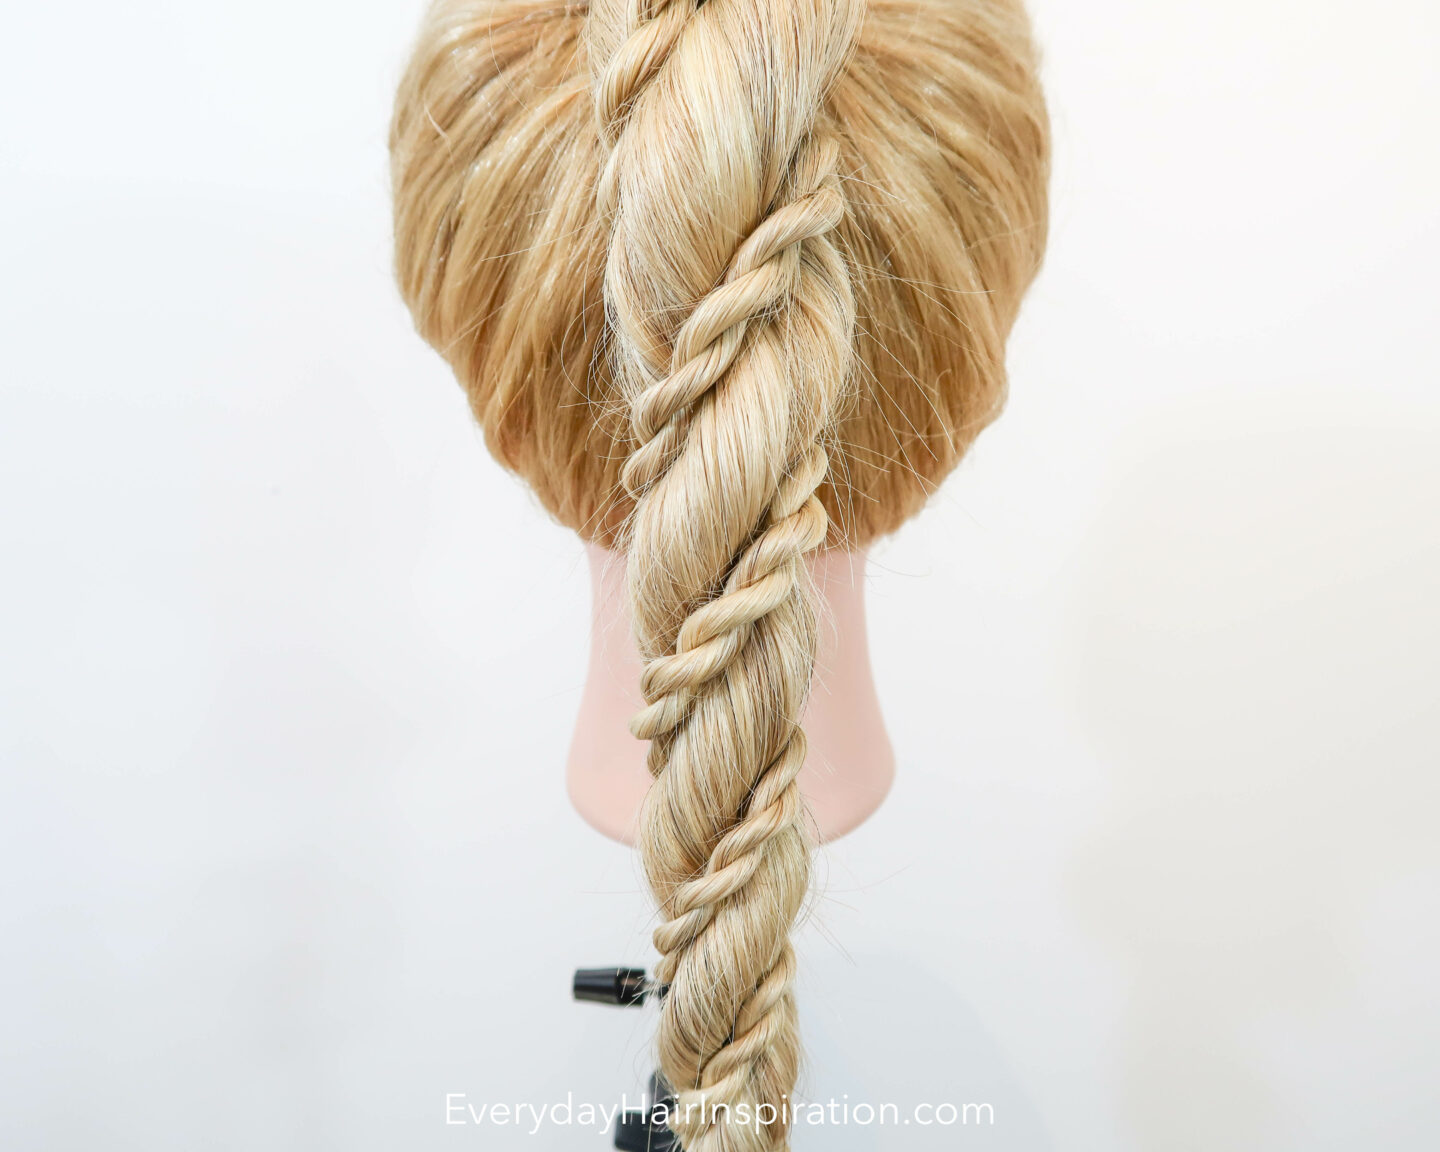 Blonde hairdresser doll seen from the back, closeup,  with a high ponytail in the hair. The ponytail is a rope braid, with 2 small rope braids wrapped around the big rope braid.